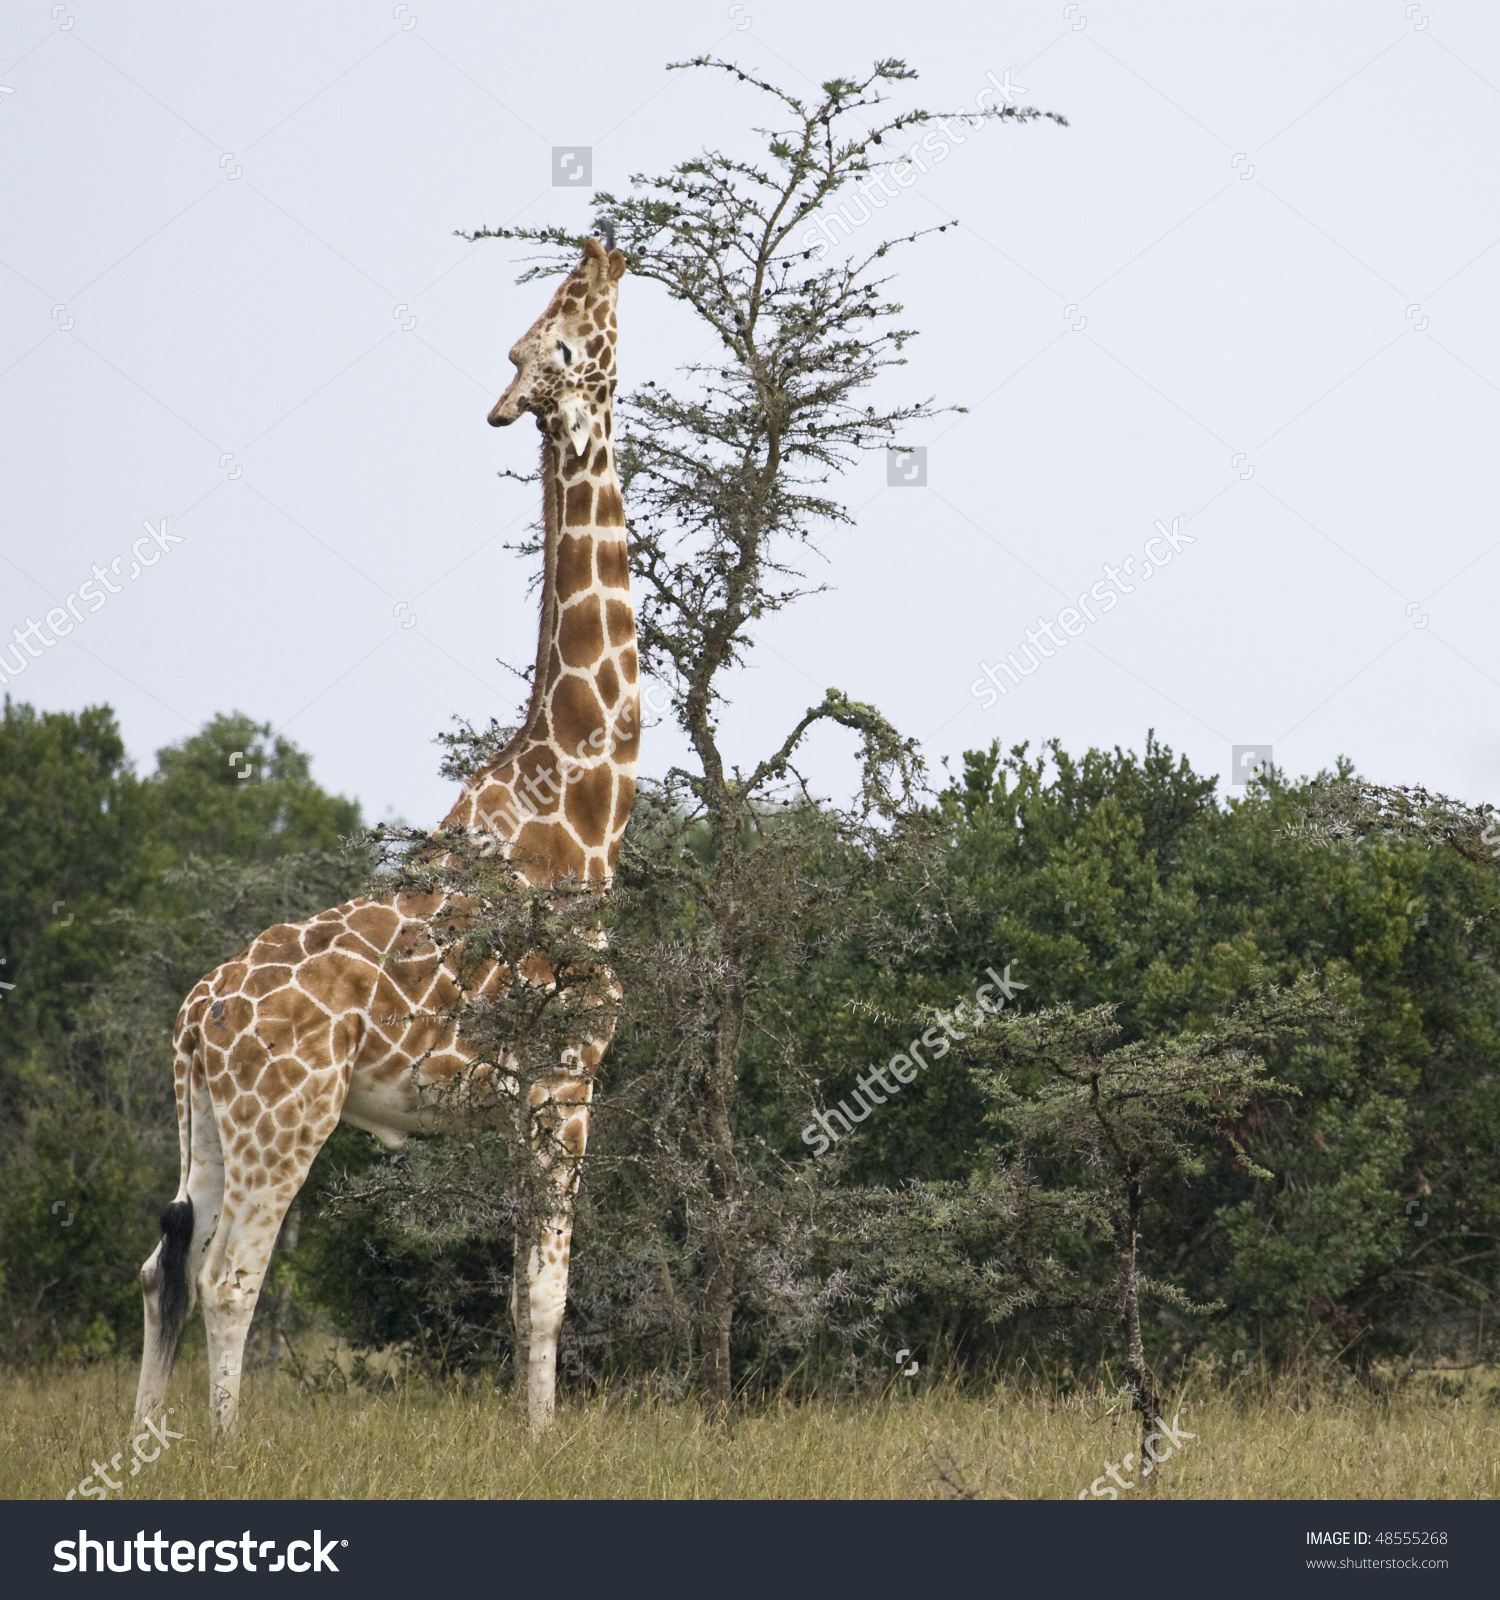 Reticulated Giraffe Or Somali Giraffe, Republic Of Kenya, East.